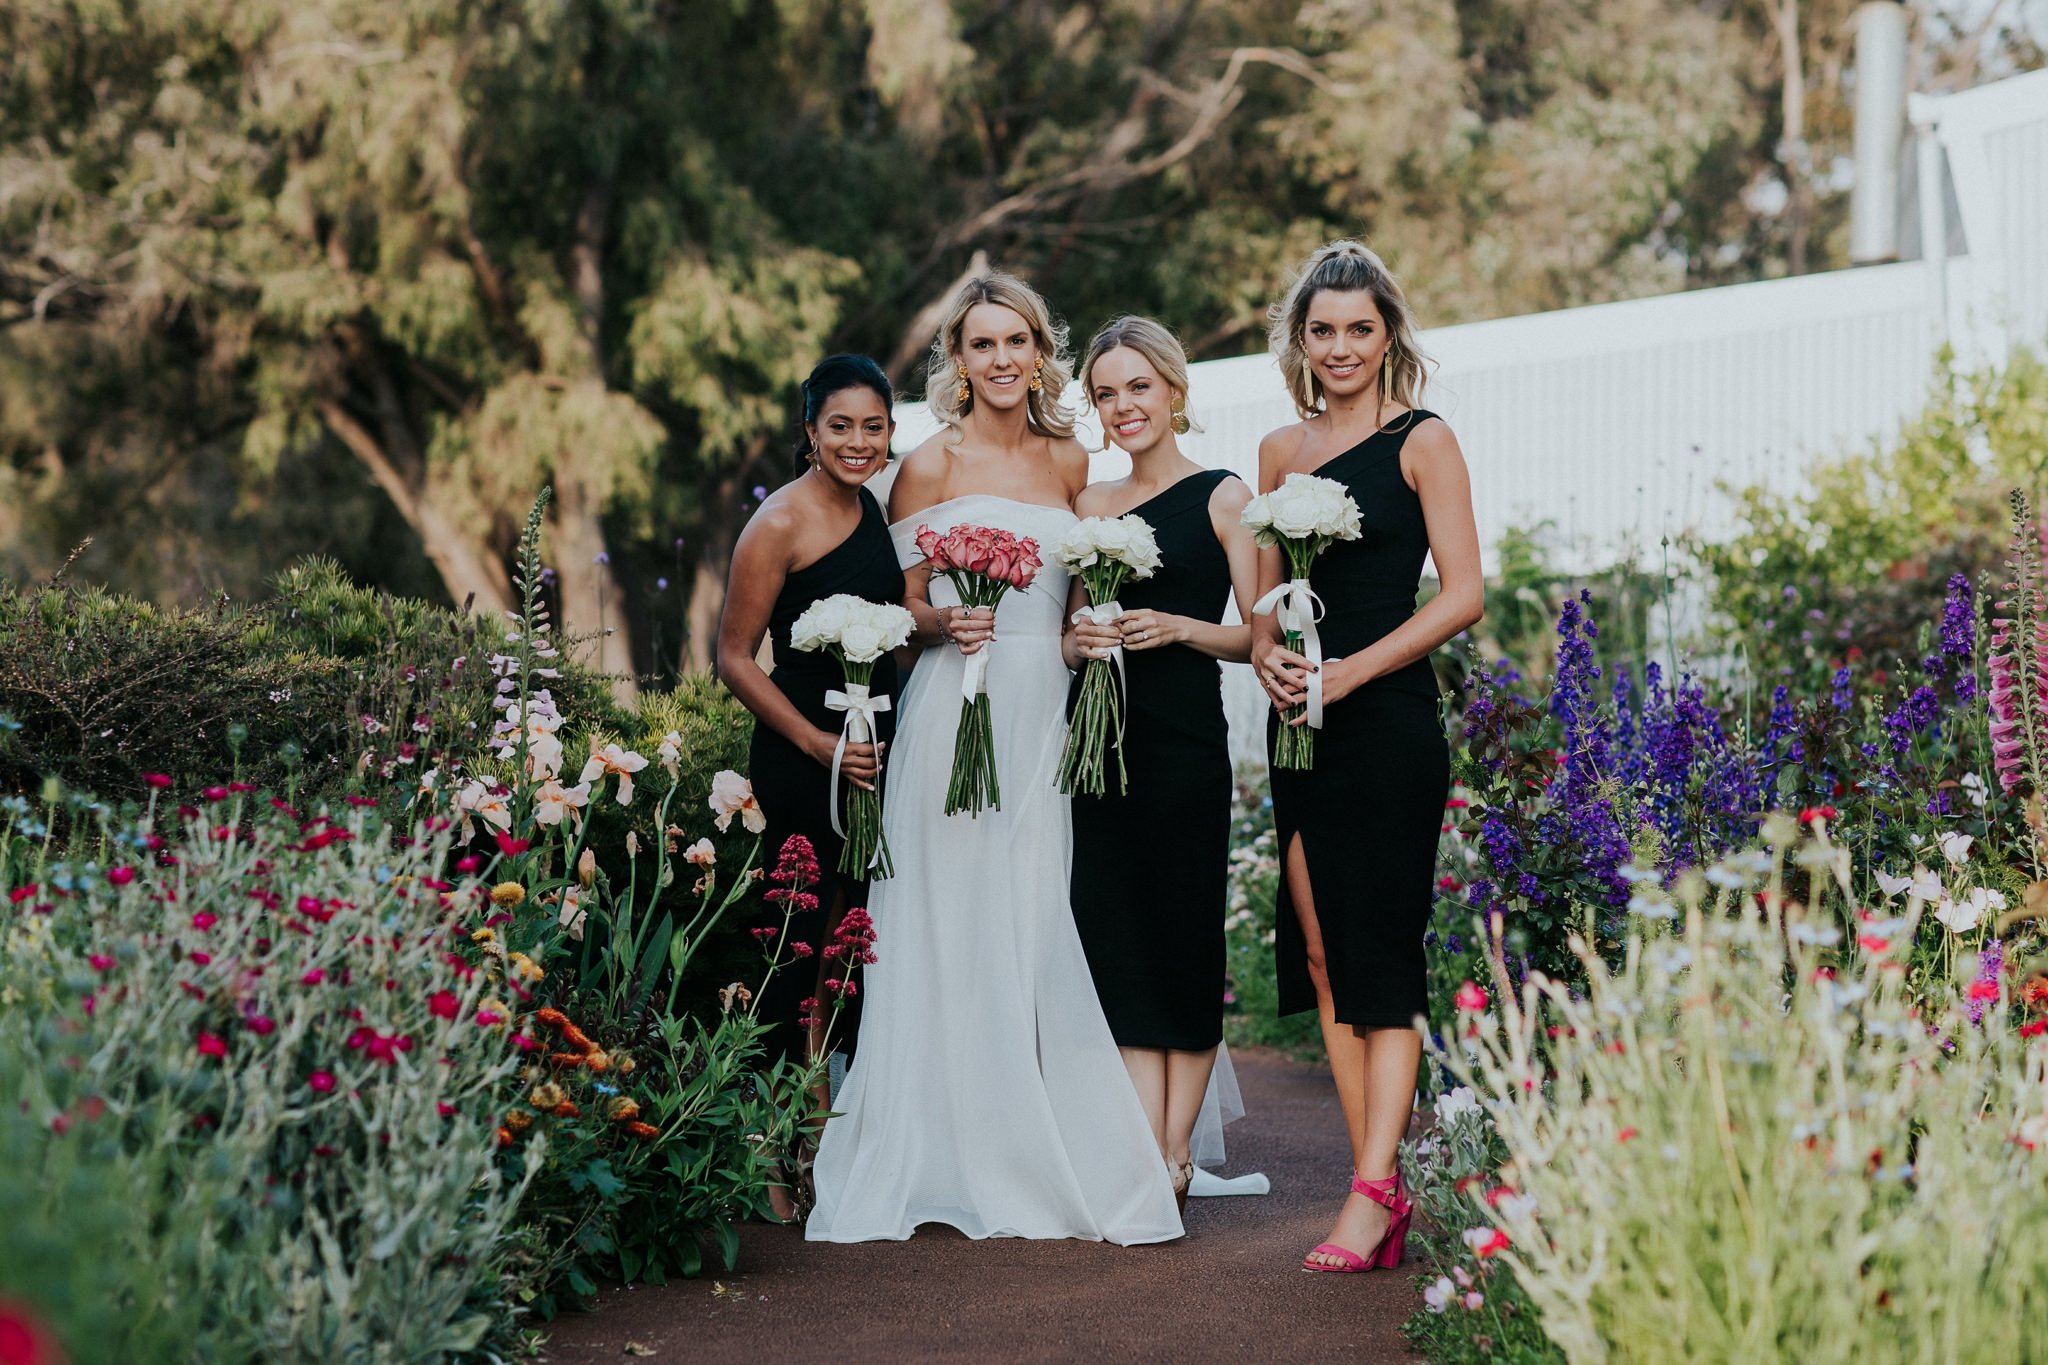 Juniper Estate wedding in Yallingup, Western Australia featuring Georgia Young Couture. Photos by Kate Drennan.